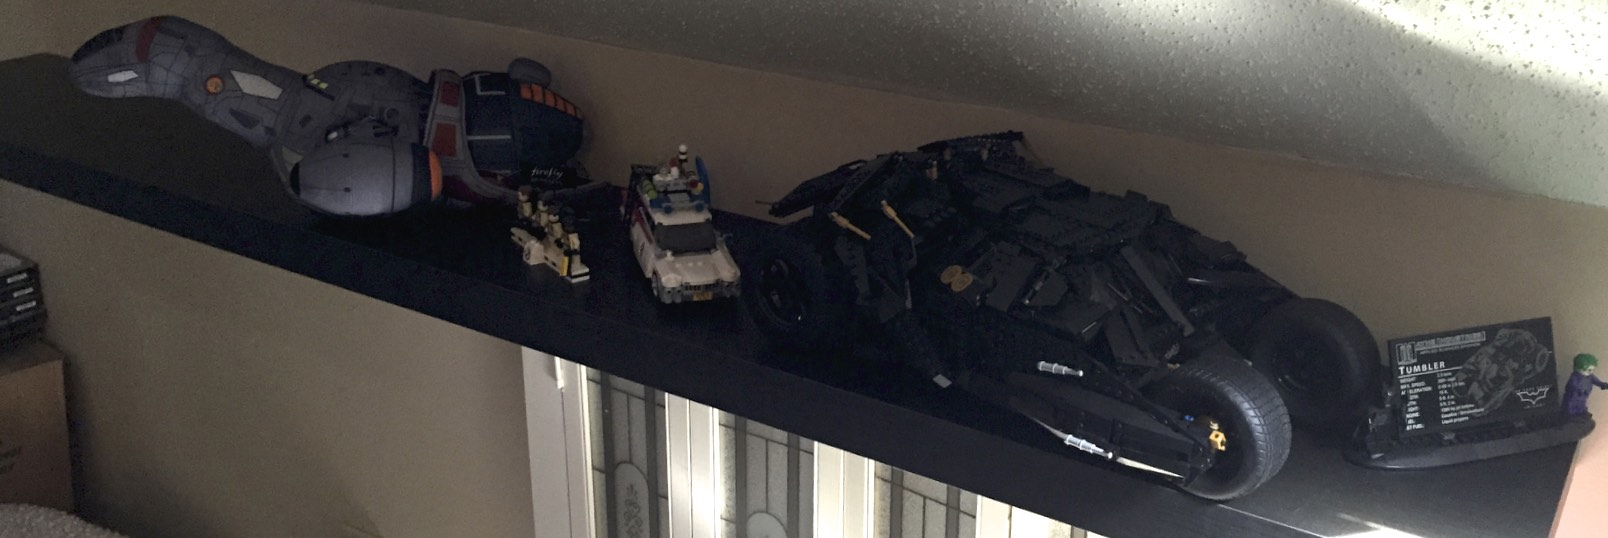 Plush Serenity, LEGO Ghostbusters and ECTO-1, and the Dark Knight Tumbler.